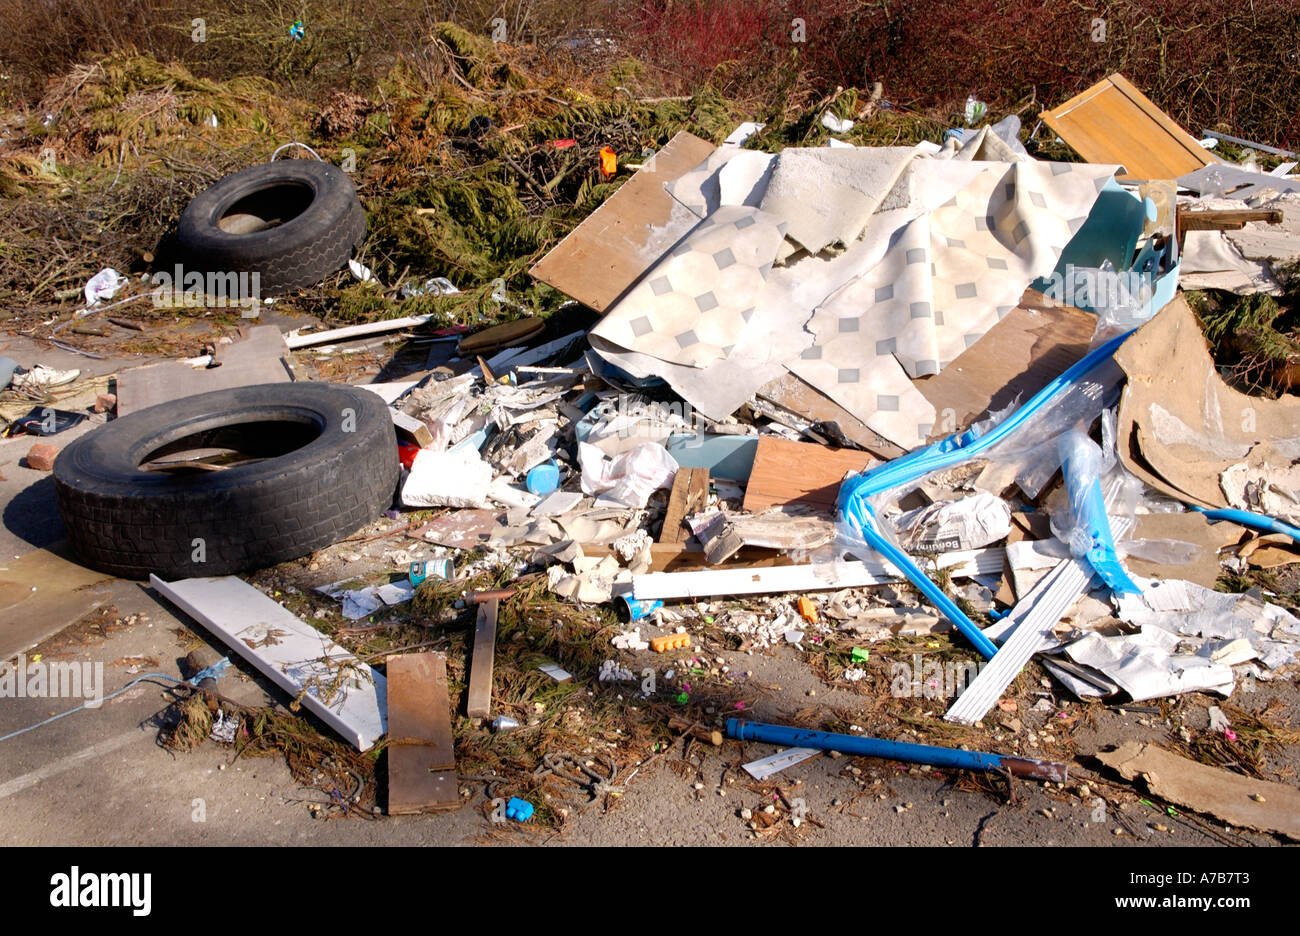 Rubbish left by caravan travellers dumped in car park of disused factory Newport South Wales UK - Stock Image